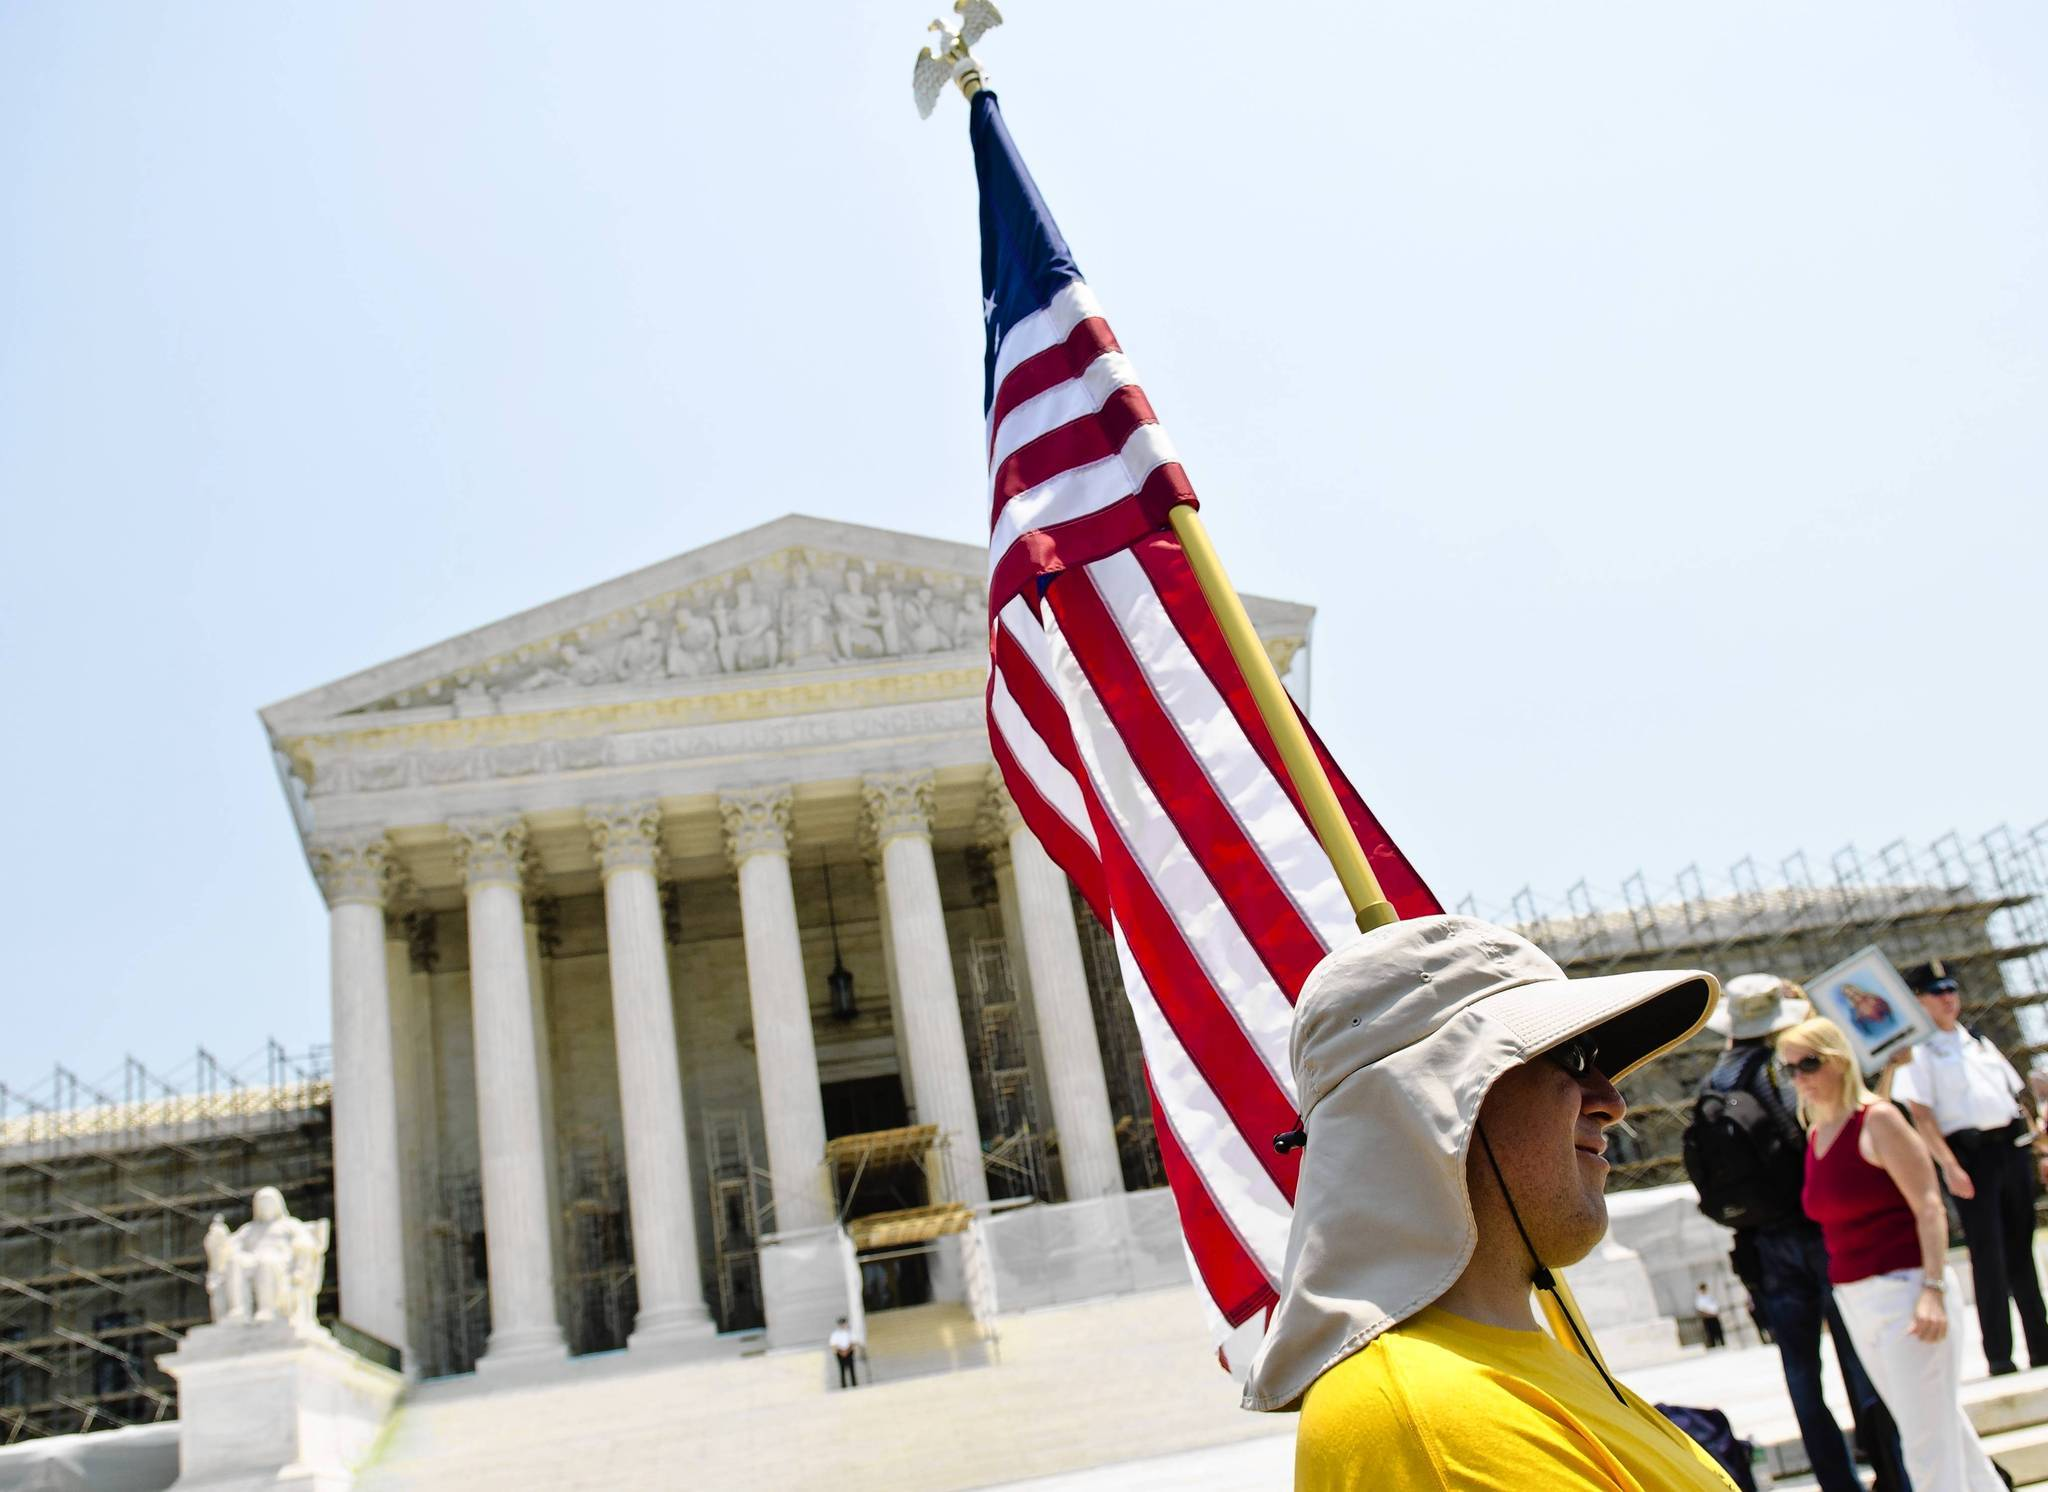 A protestor stands outside the U.S. Supreme Court on June 28, 2012 in Washington, DC. The Court found the Affordable Healthcare Act to be constitutional and did not strike down any part of it.